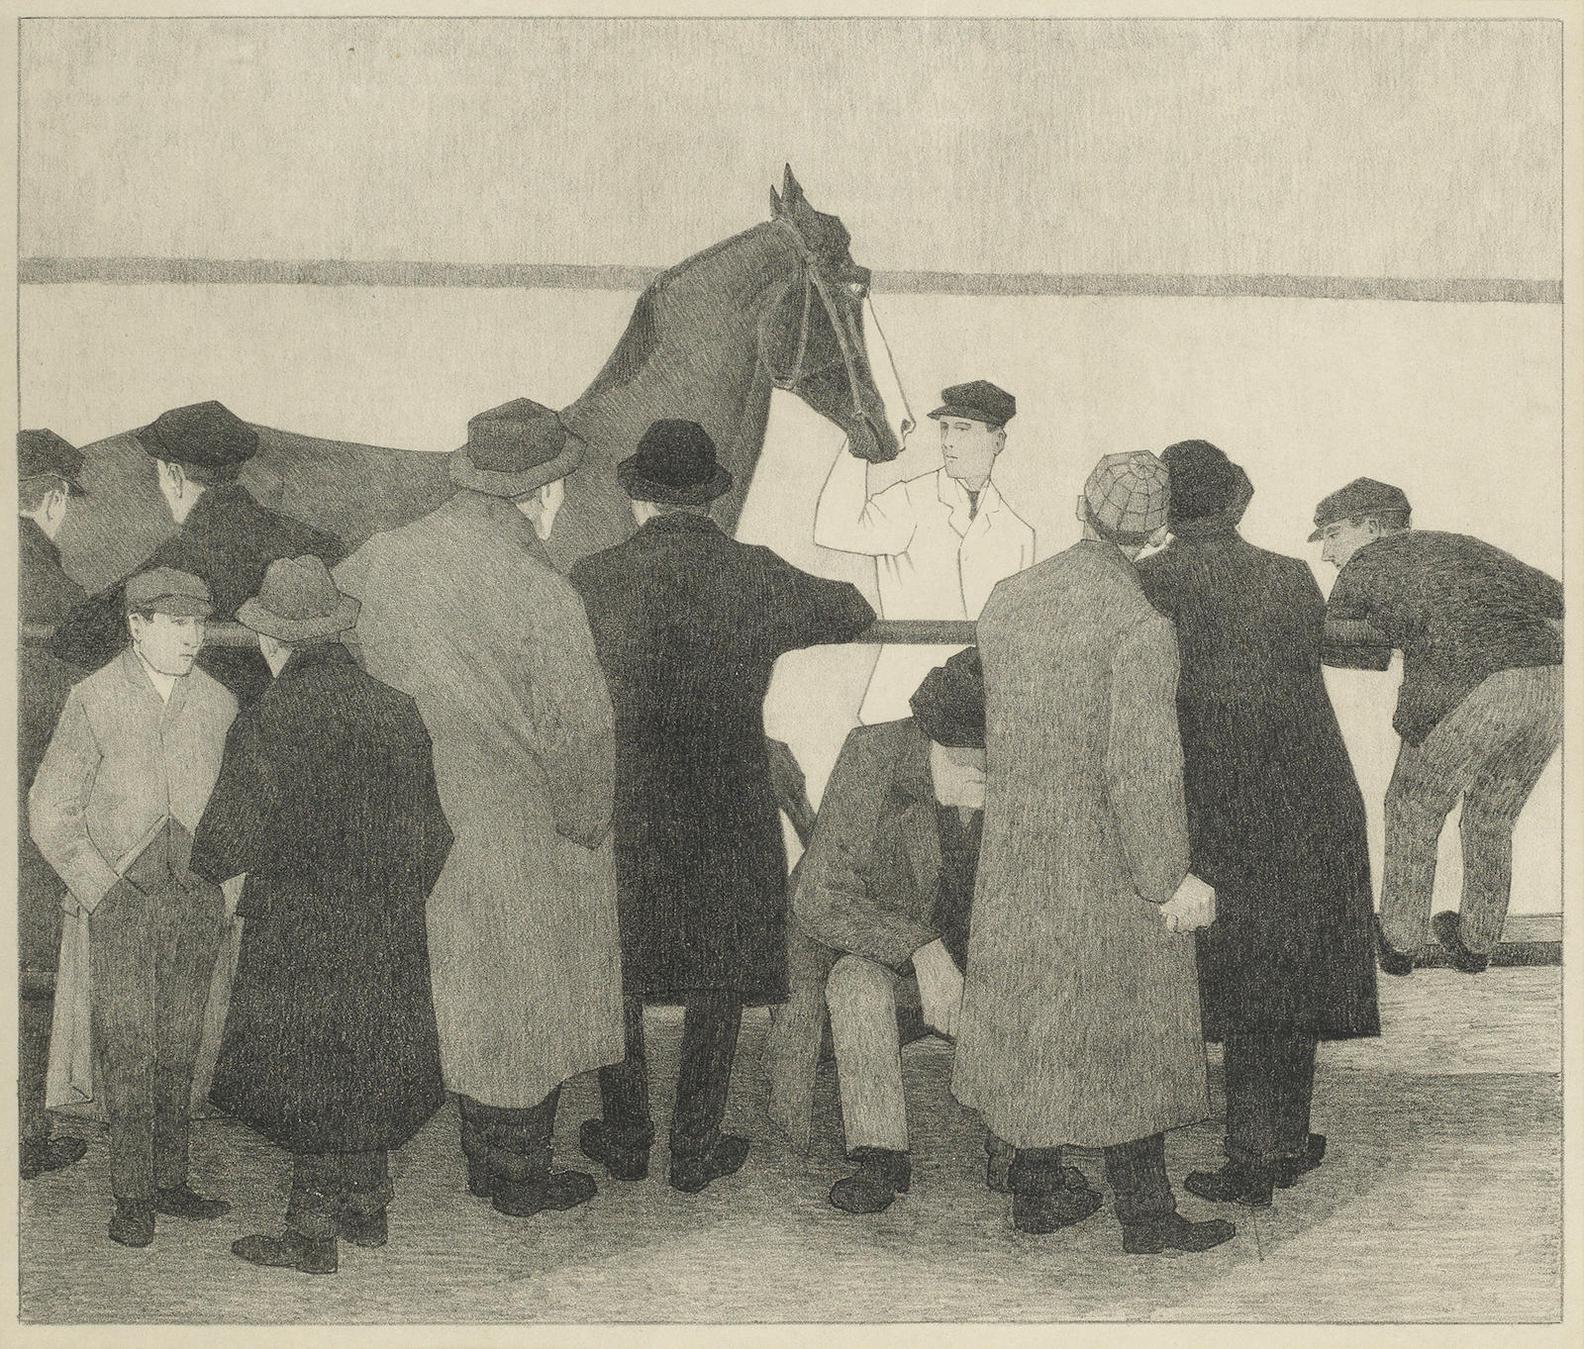 Robert Bevan-Horse Dealers (Wards Repository No.1) (Dry 33); Sale at Ward's Repository' (Ward's No.2) (D36)-1921